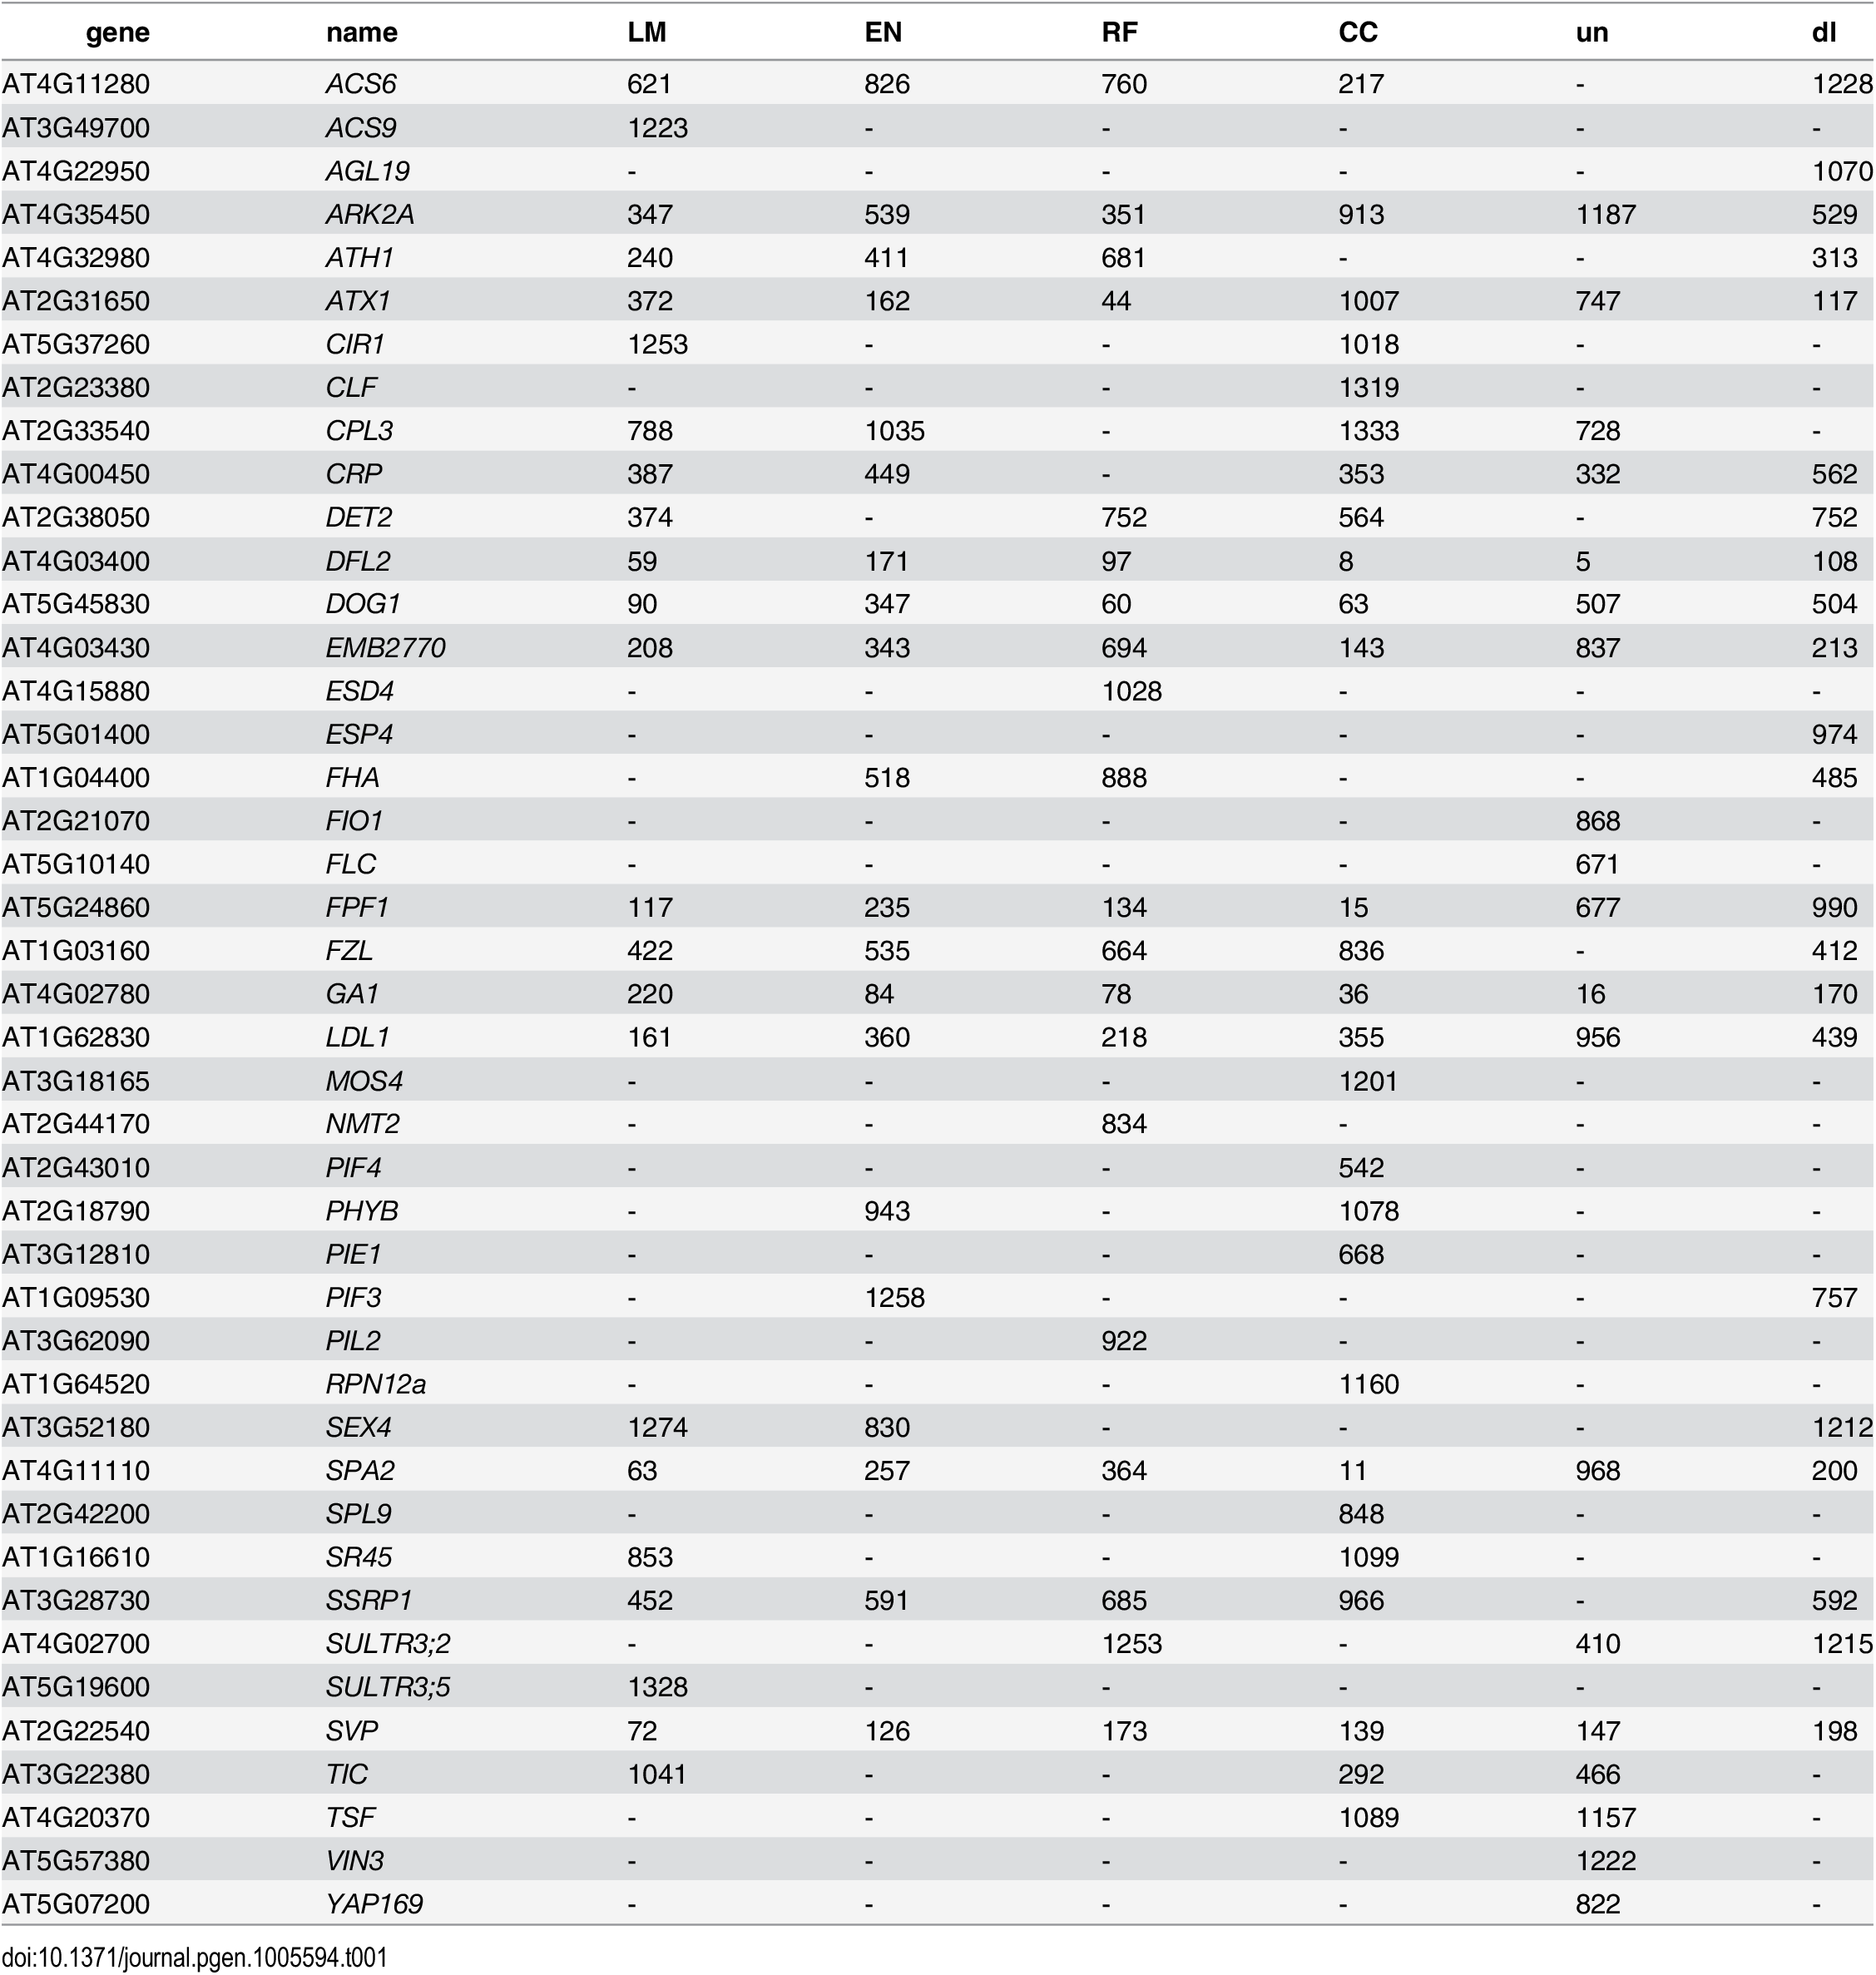 List of genes recovered by different types of bivariate ETM, containing all flowering genes assigned to any of the 2000 SNPs with the lowest p-value for each method.